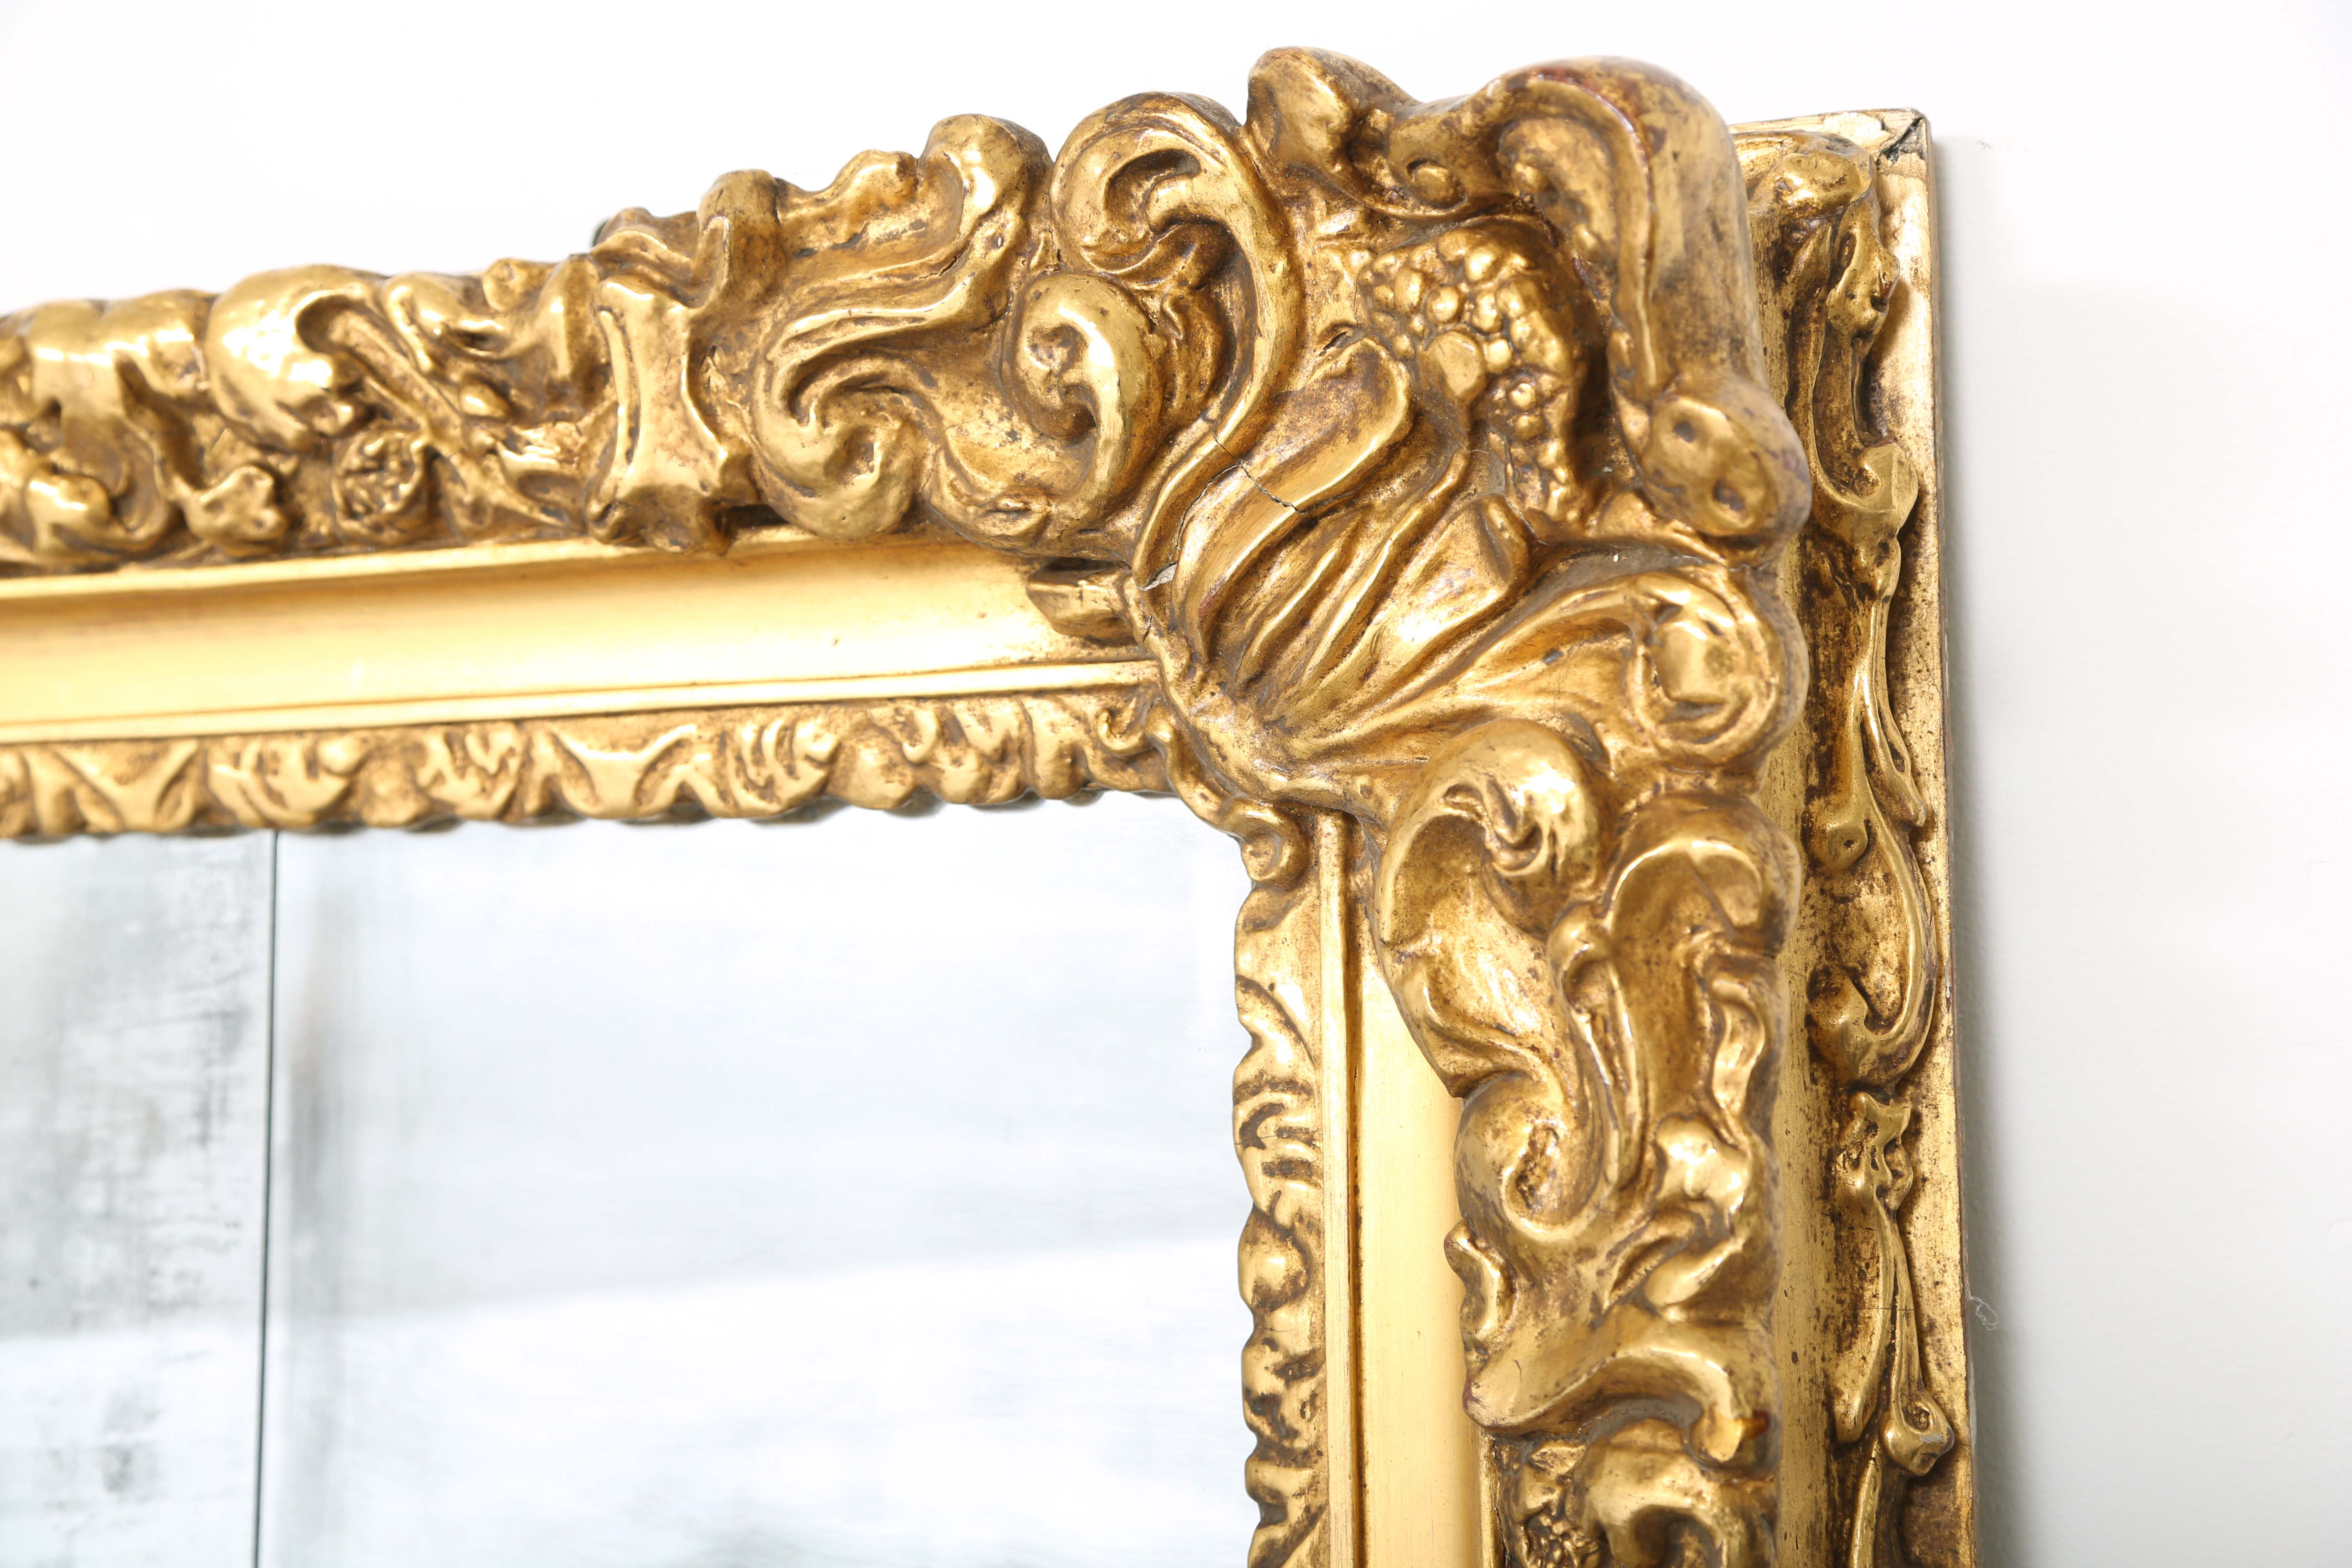 Monumental 19th Century Baroque Giltwood Wall Mirror, 9 foot x 6 ...